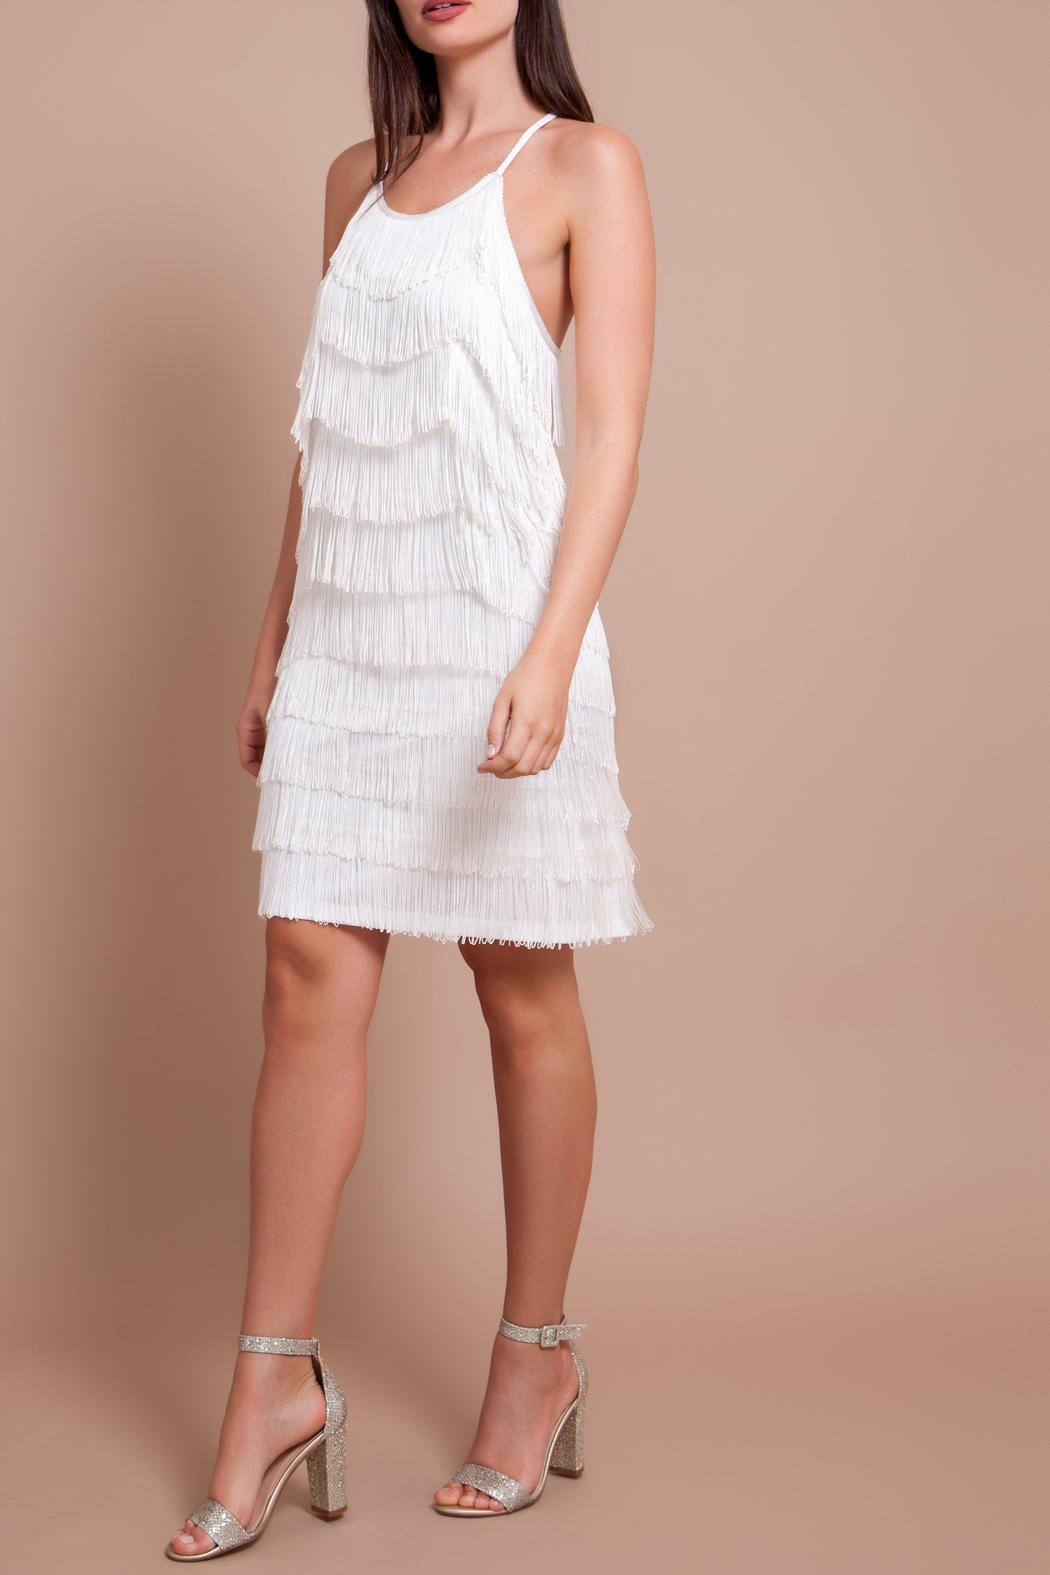 Banot By Loulou Liam White Fringe Dress Front Cropped Image